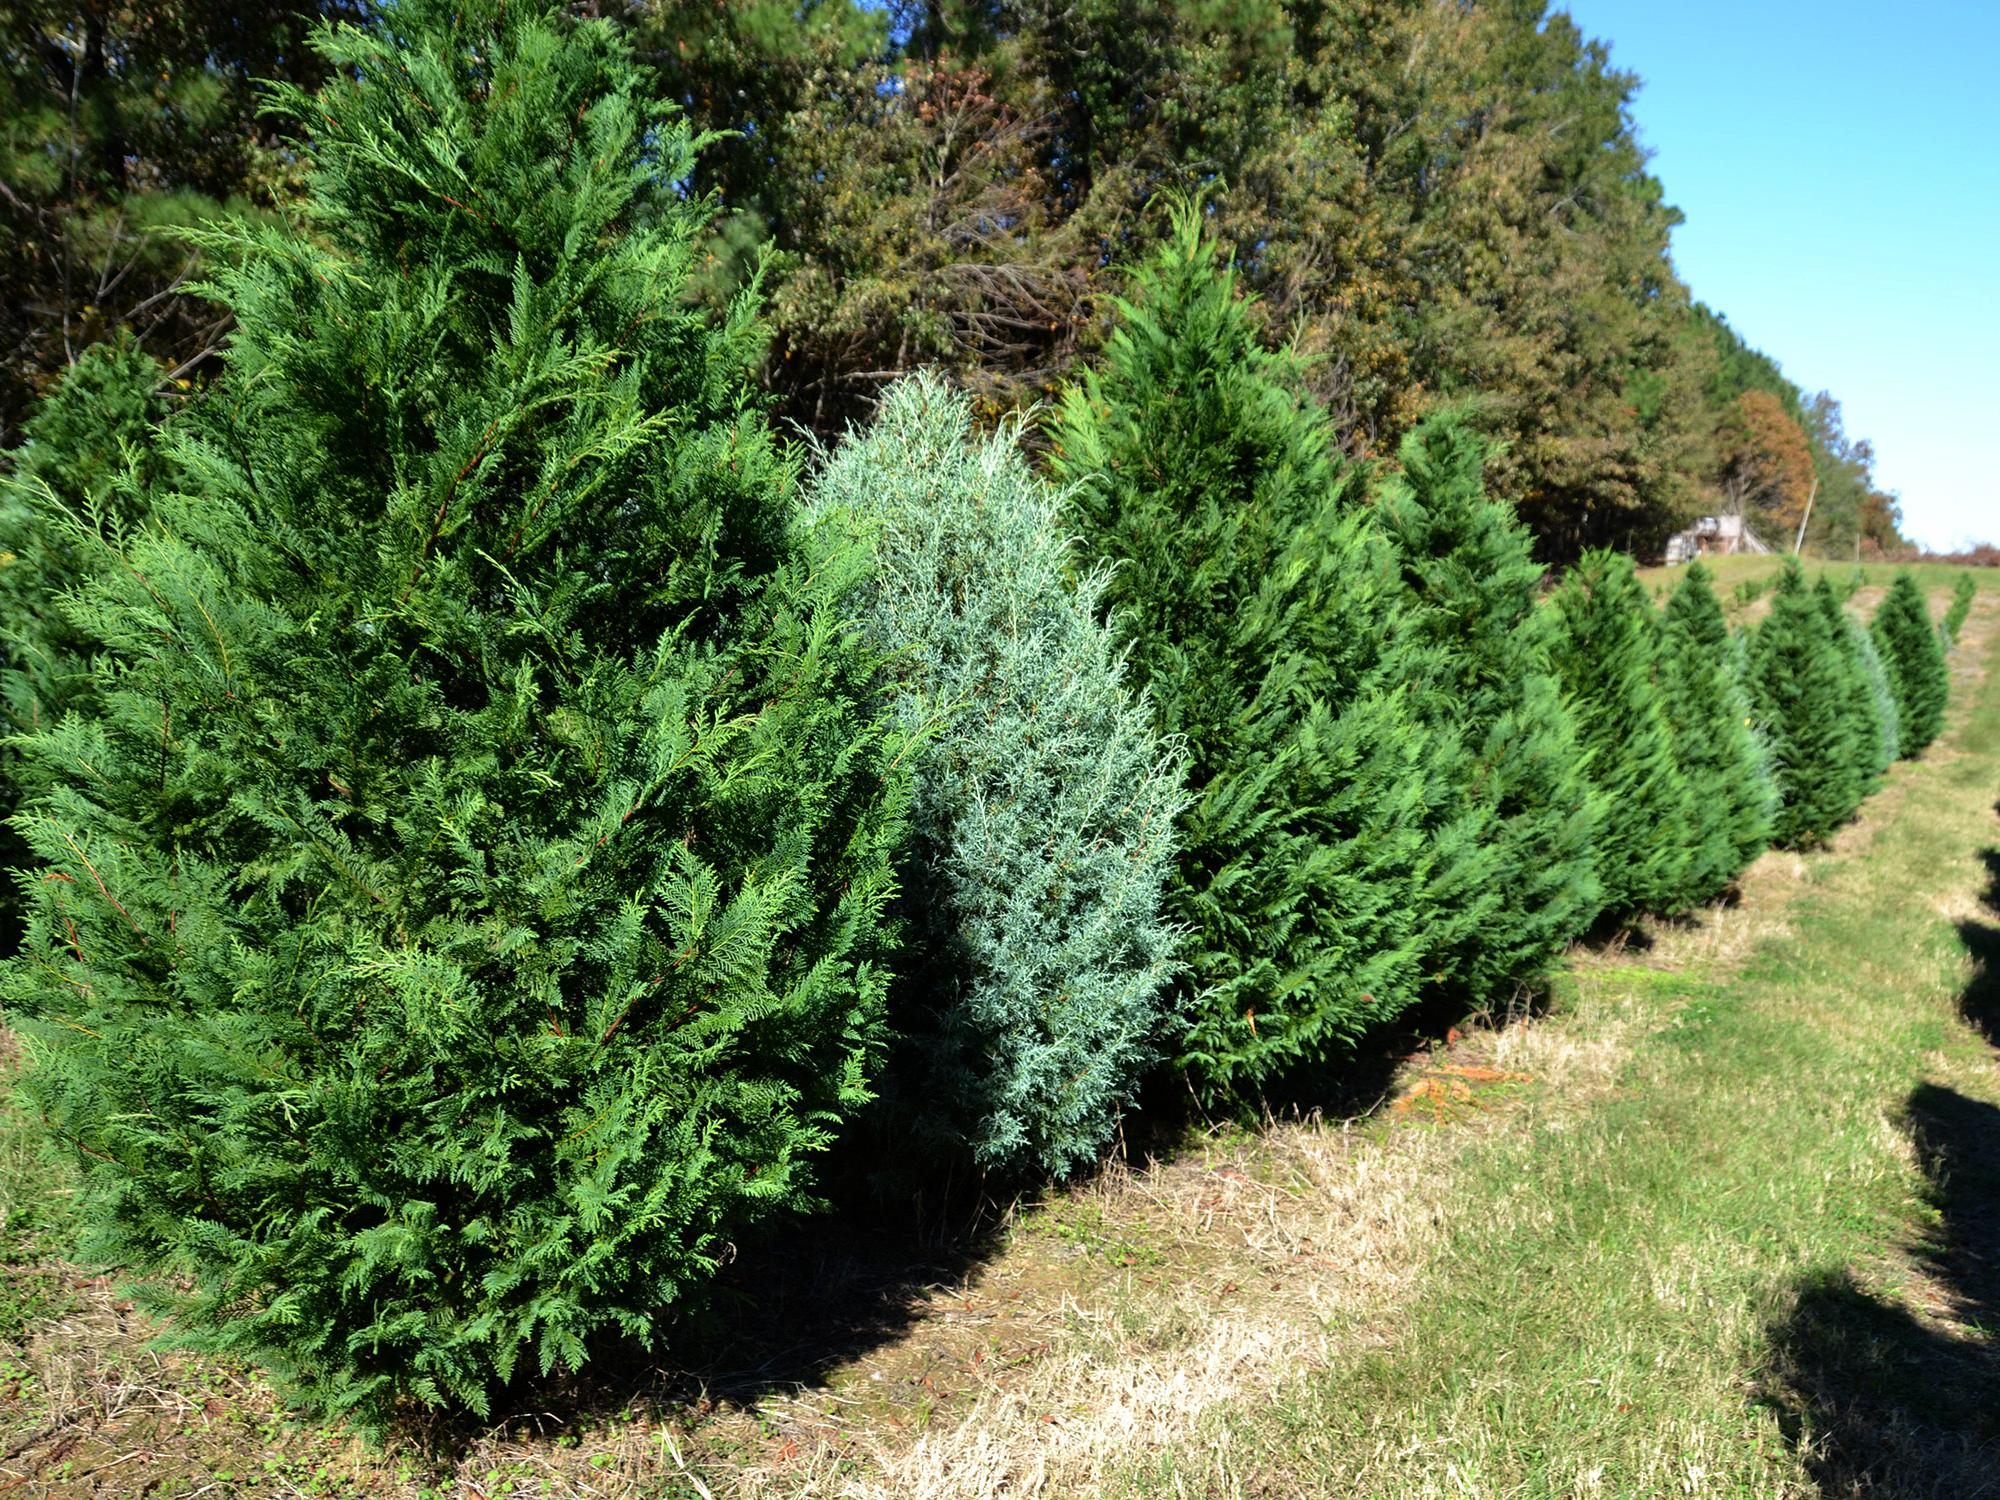 A row of Christmas trees stands at a Jackson, Mississippi, Christmas tree farm.